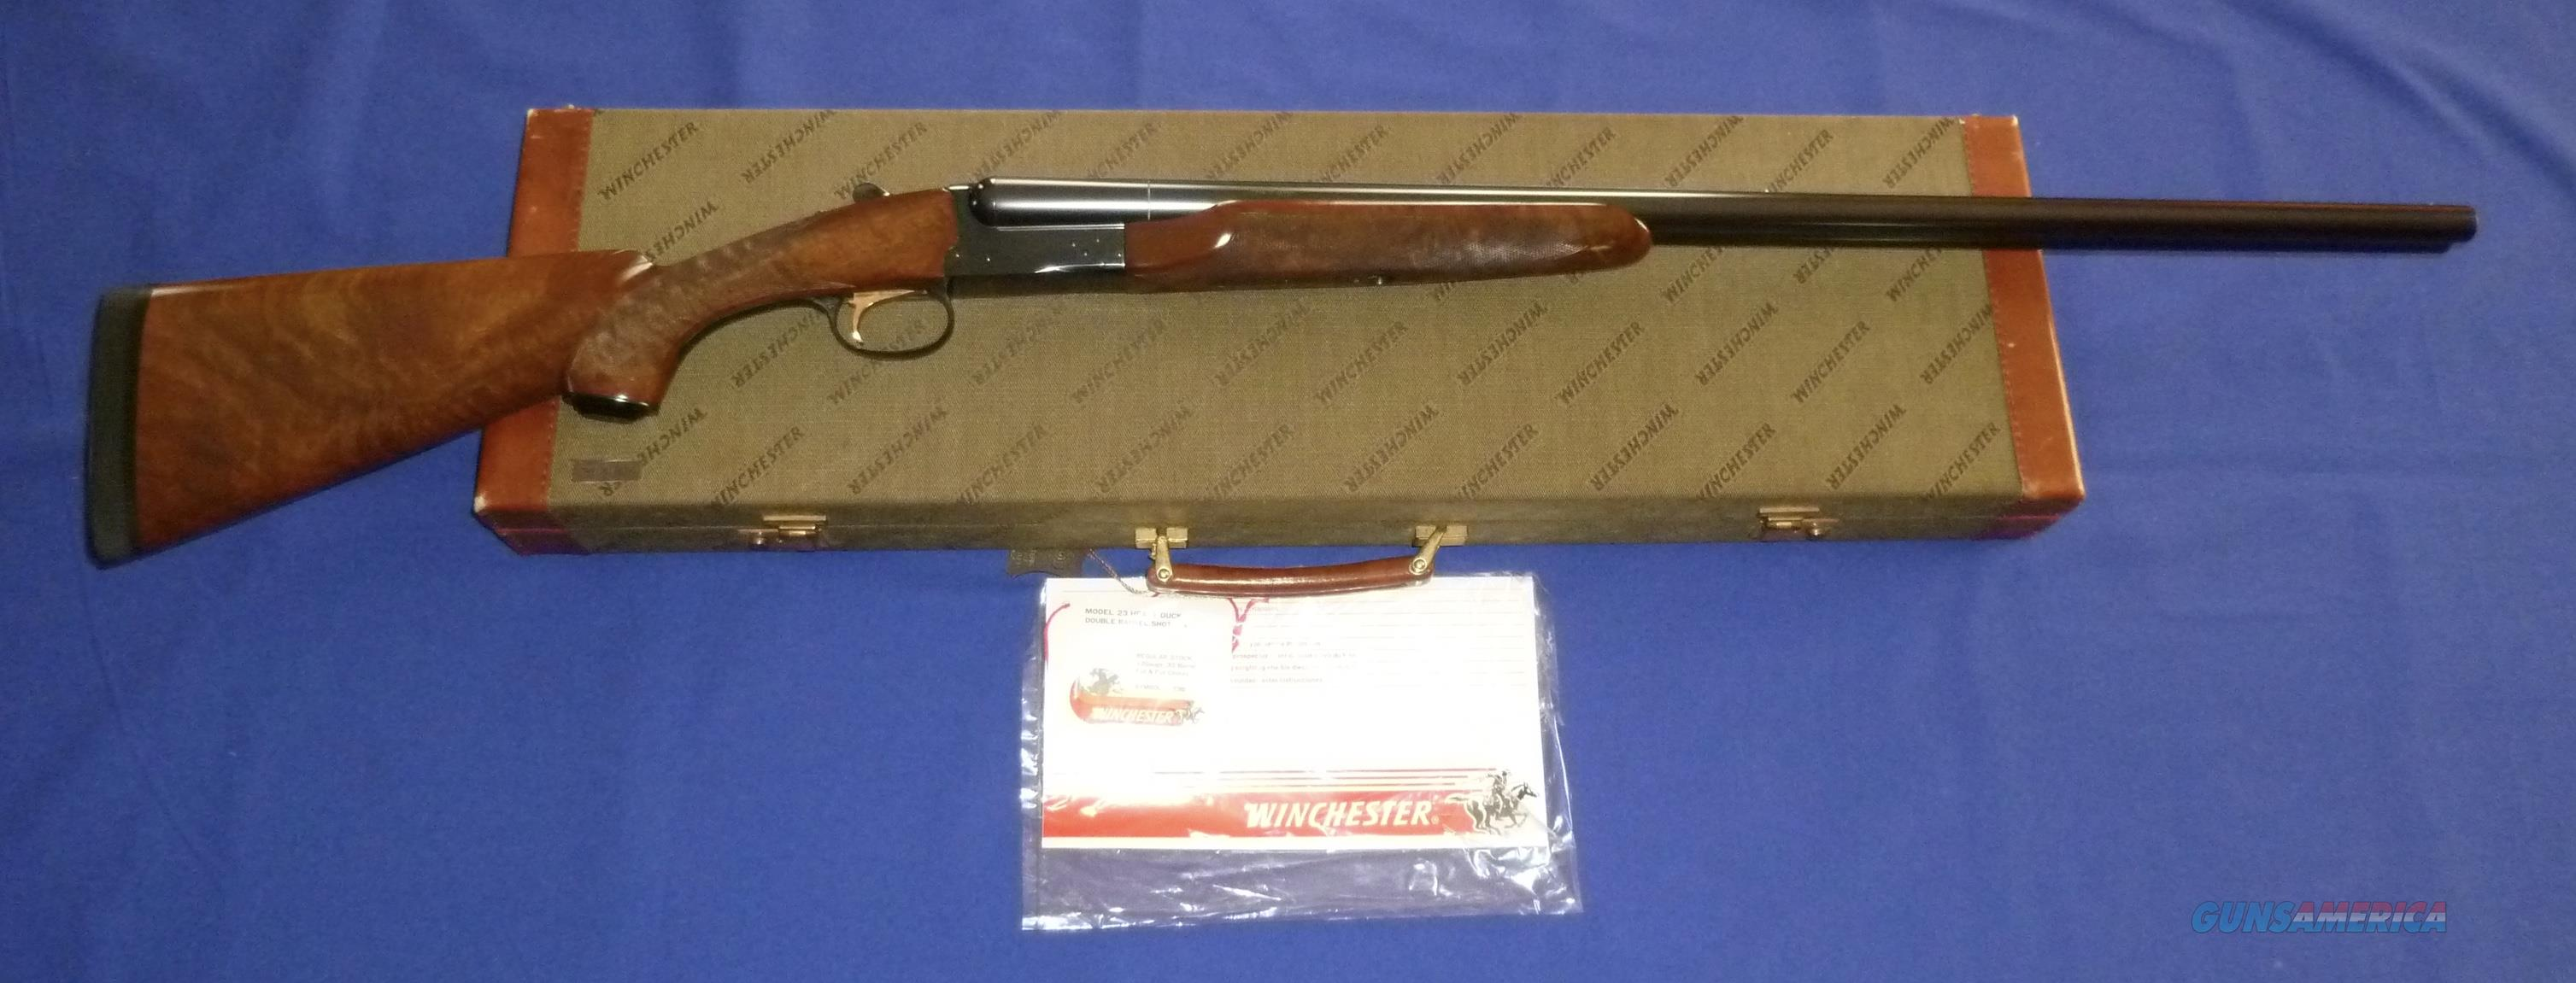 WINCHESTER MODEL 23 HEAVY DUCK 12 GAUGE DOUBLE BARREL SHOTGUN W/MATCHING CASE  Guns > Shotguns > Winchester Shotguns - Modern > SxS